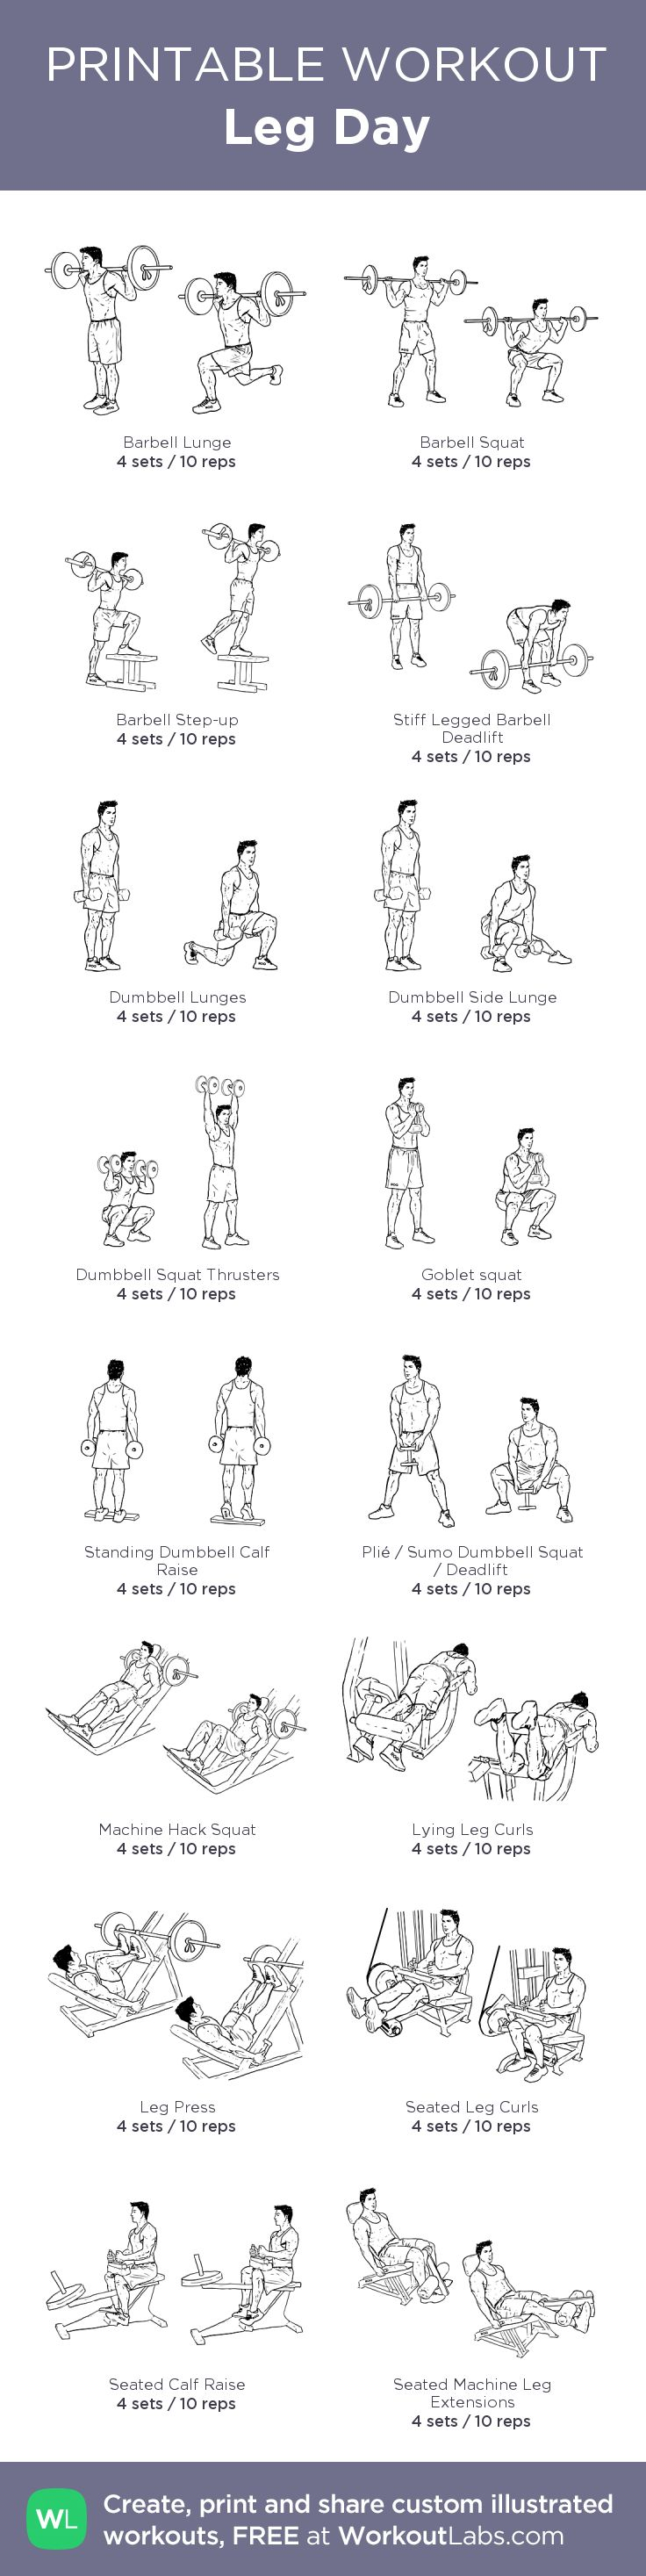 Leg Day: my custom printable workout by @WorkoutLabs #workoutlabs #customworkout